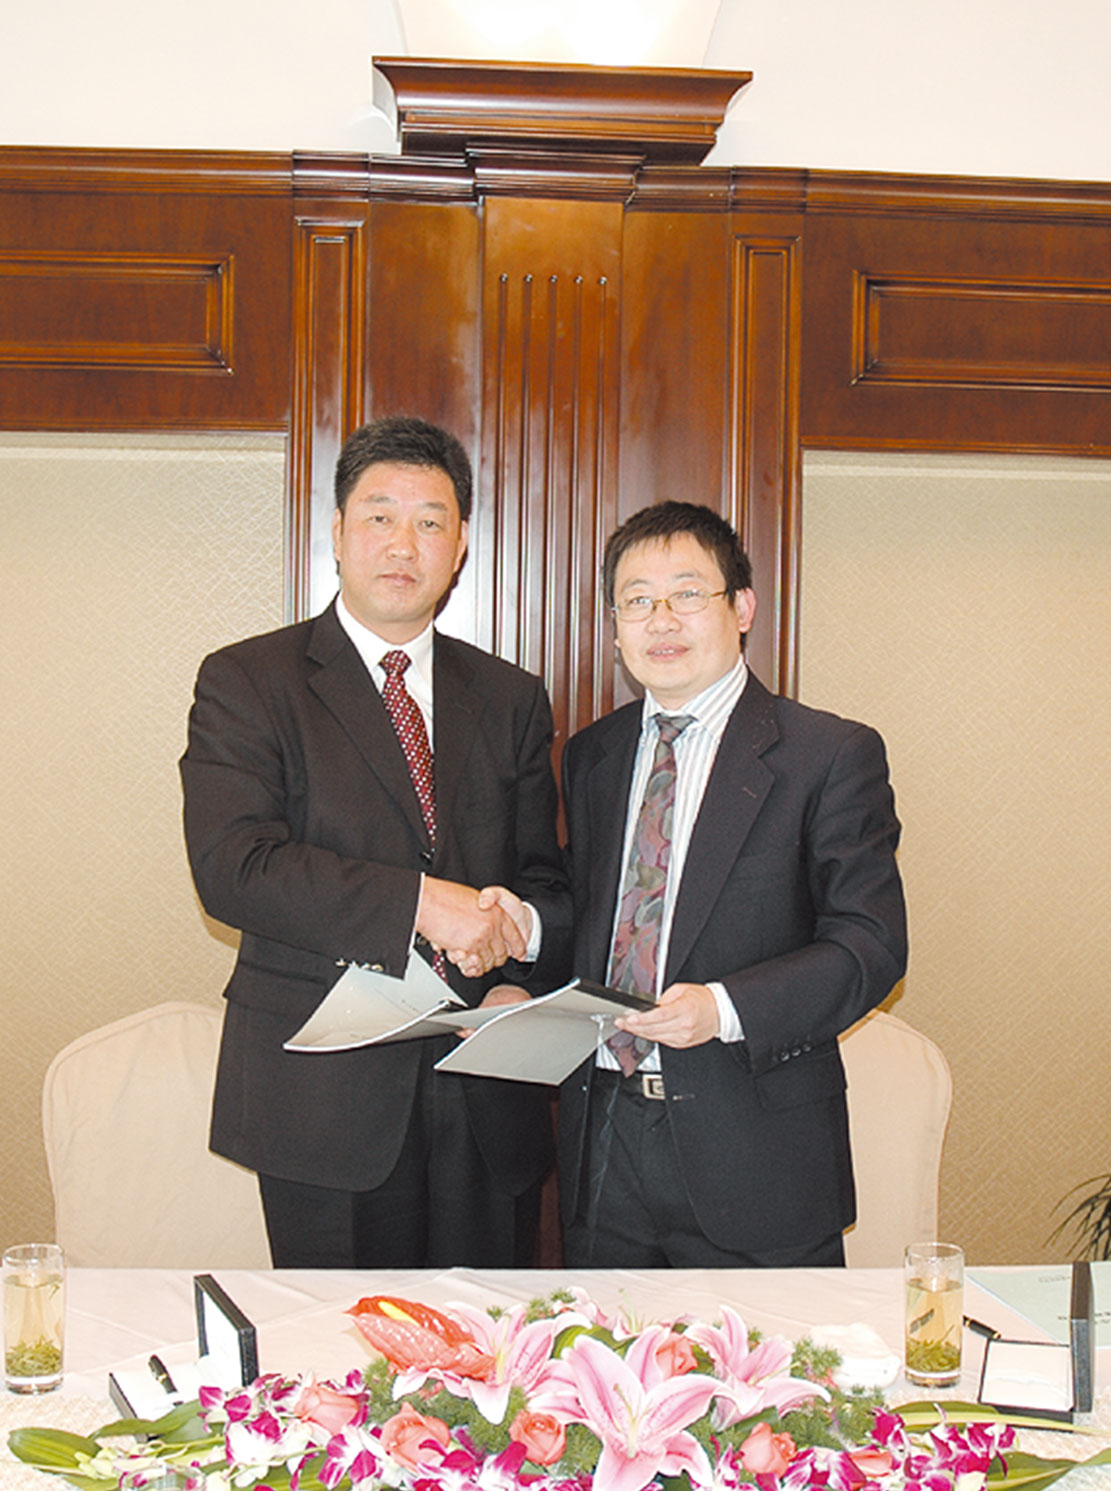 """On November 21, 2007, the Agreement on Equity Capital Increase was formally signed between Forchn Holding Group and Zhang Xiaoquan, which indicated the success of the second restructuring of """"Zhang Xiaoquan""""."""